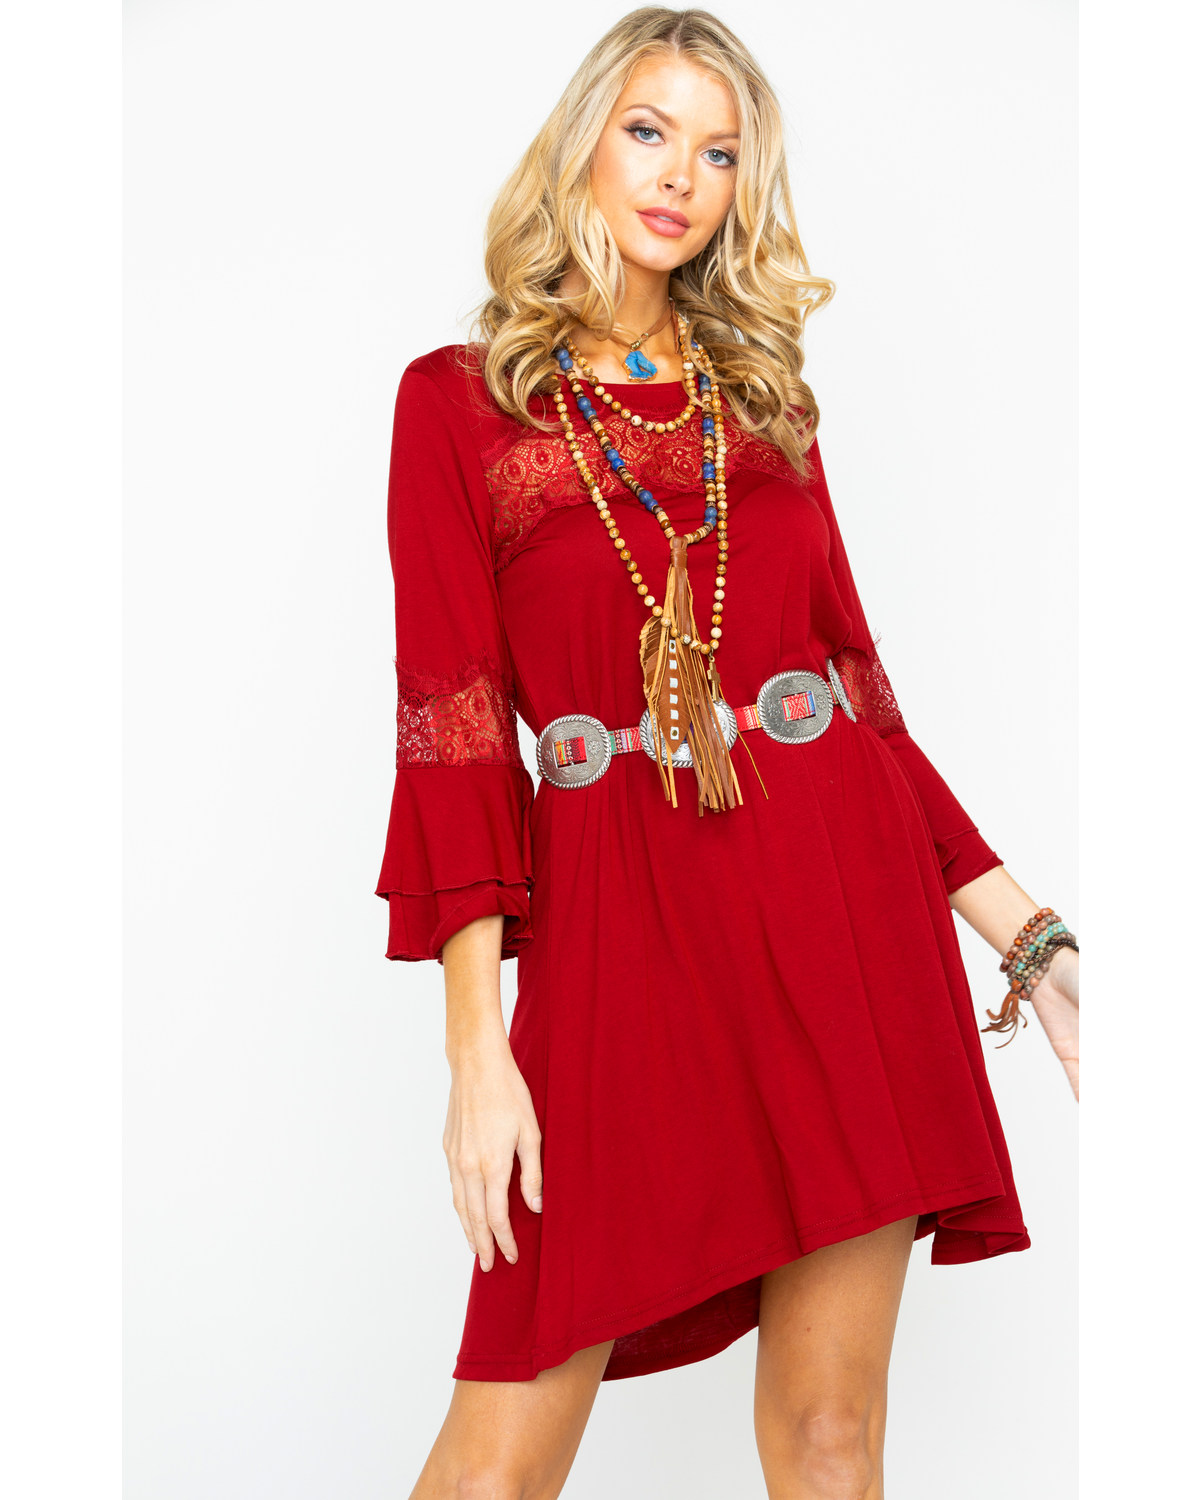 455b70fefa8e Wrangler Women s Solid Wine Lace Bell Sleeve Dress